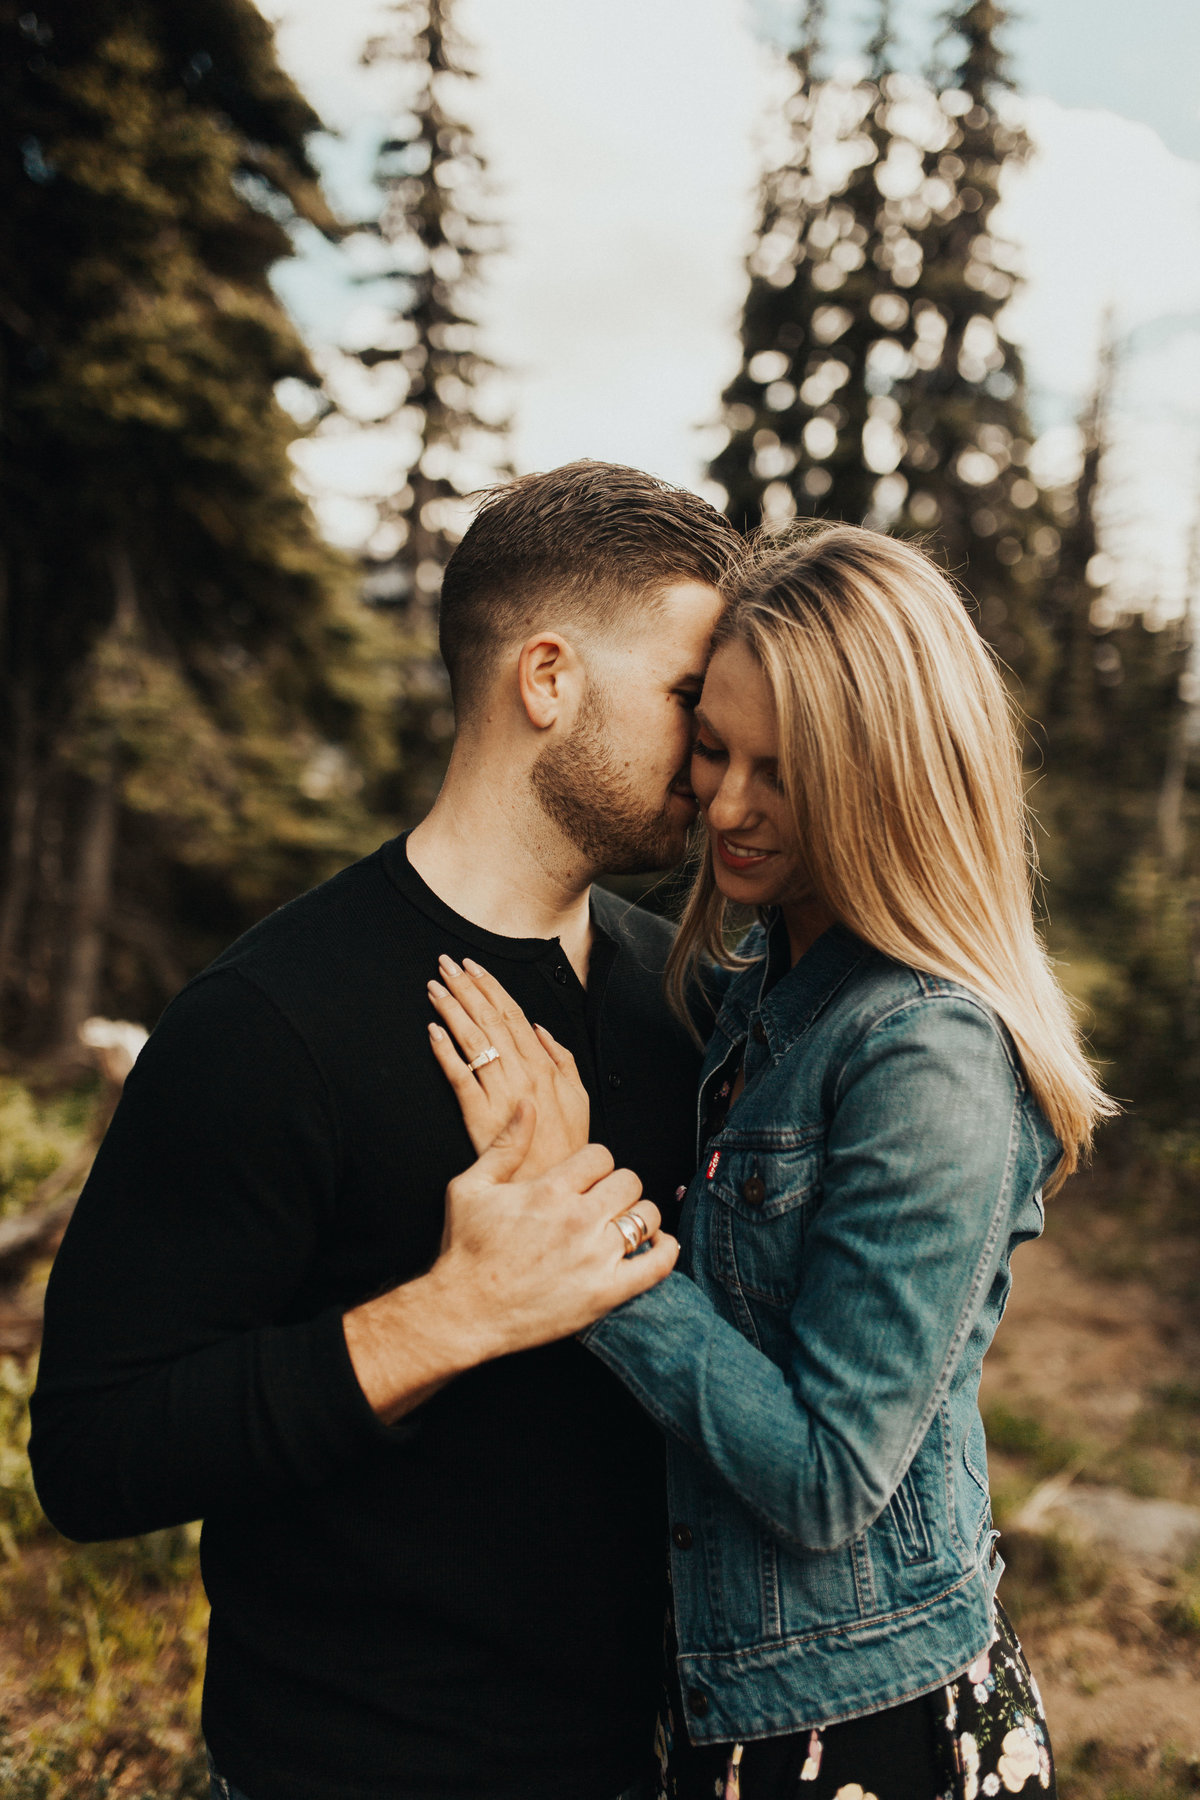 Marnie_Cornell_Photography_Engagement_Mount_Rainier_RK-12